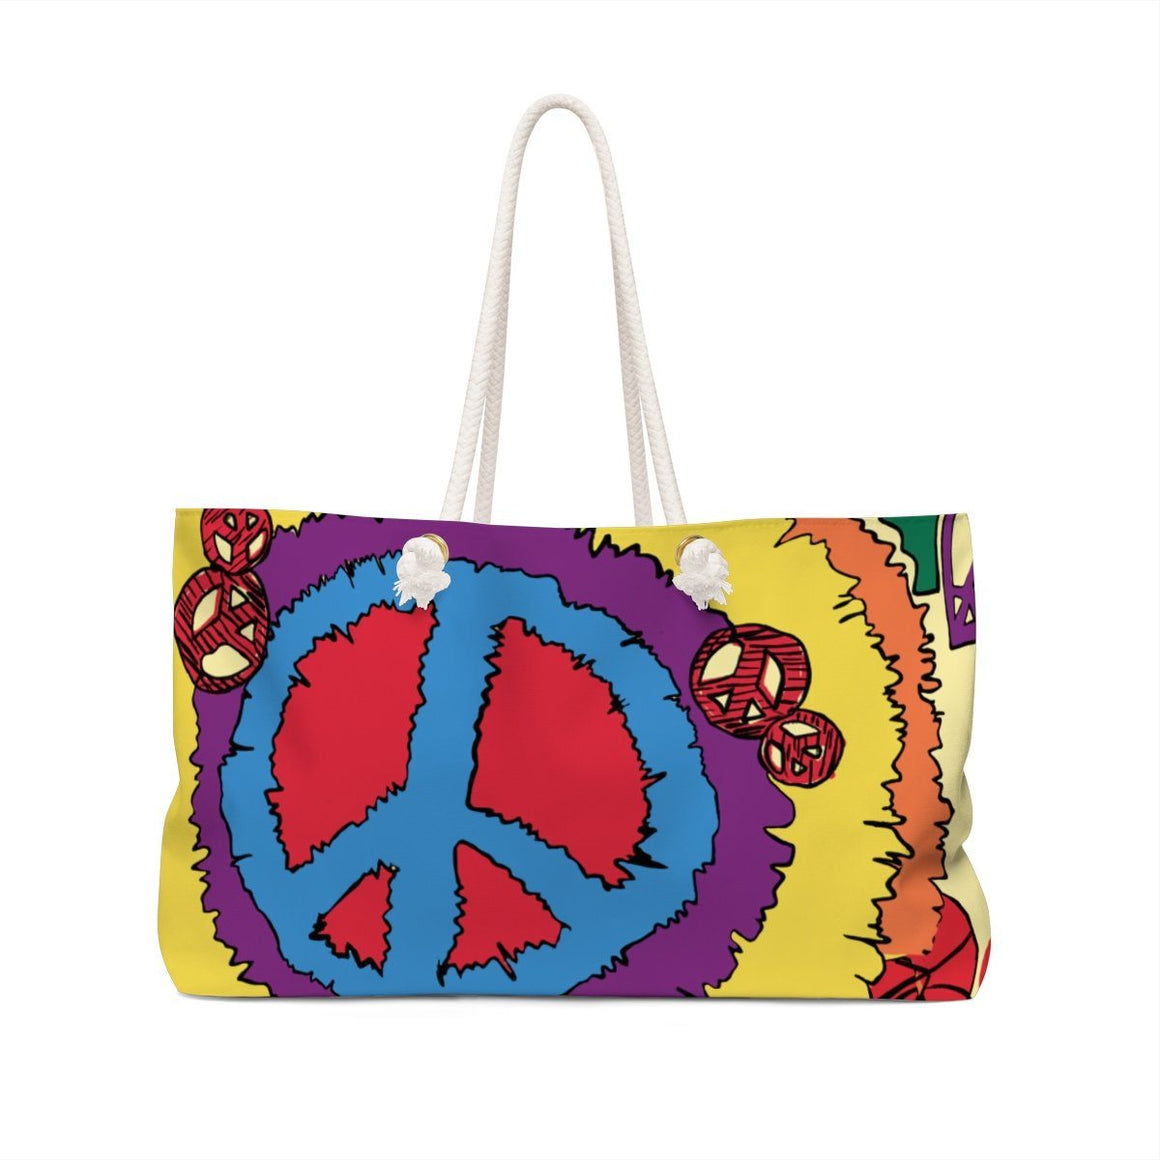 Hippie Van Weekender Bag - Heyjude Shoppe f18e71bd2add2